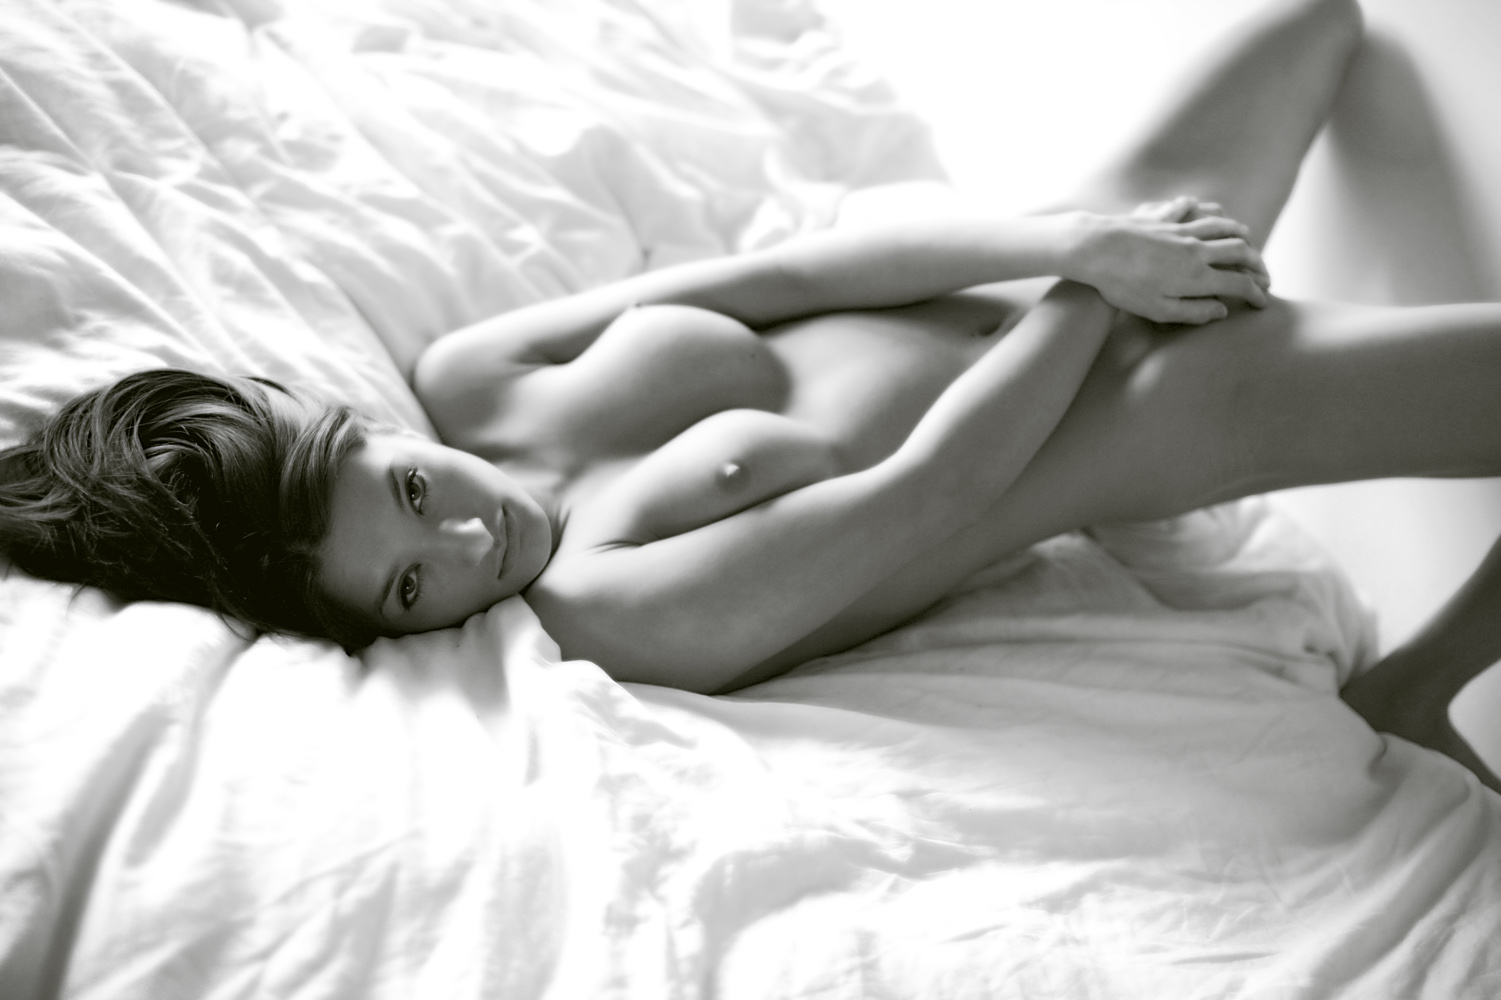 ashley_haber_nude_photography_0276.jpg